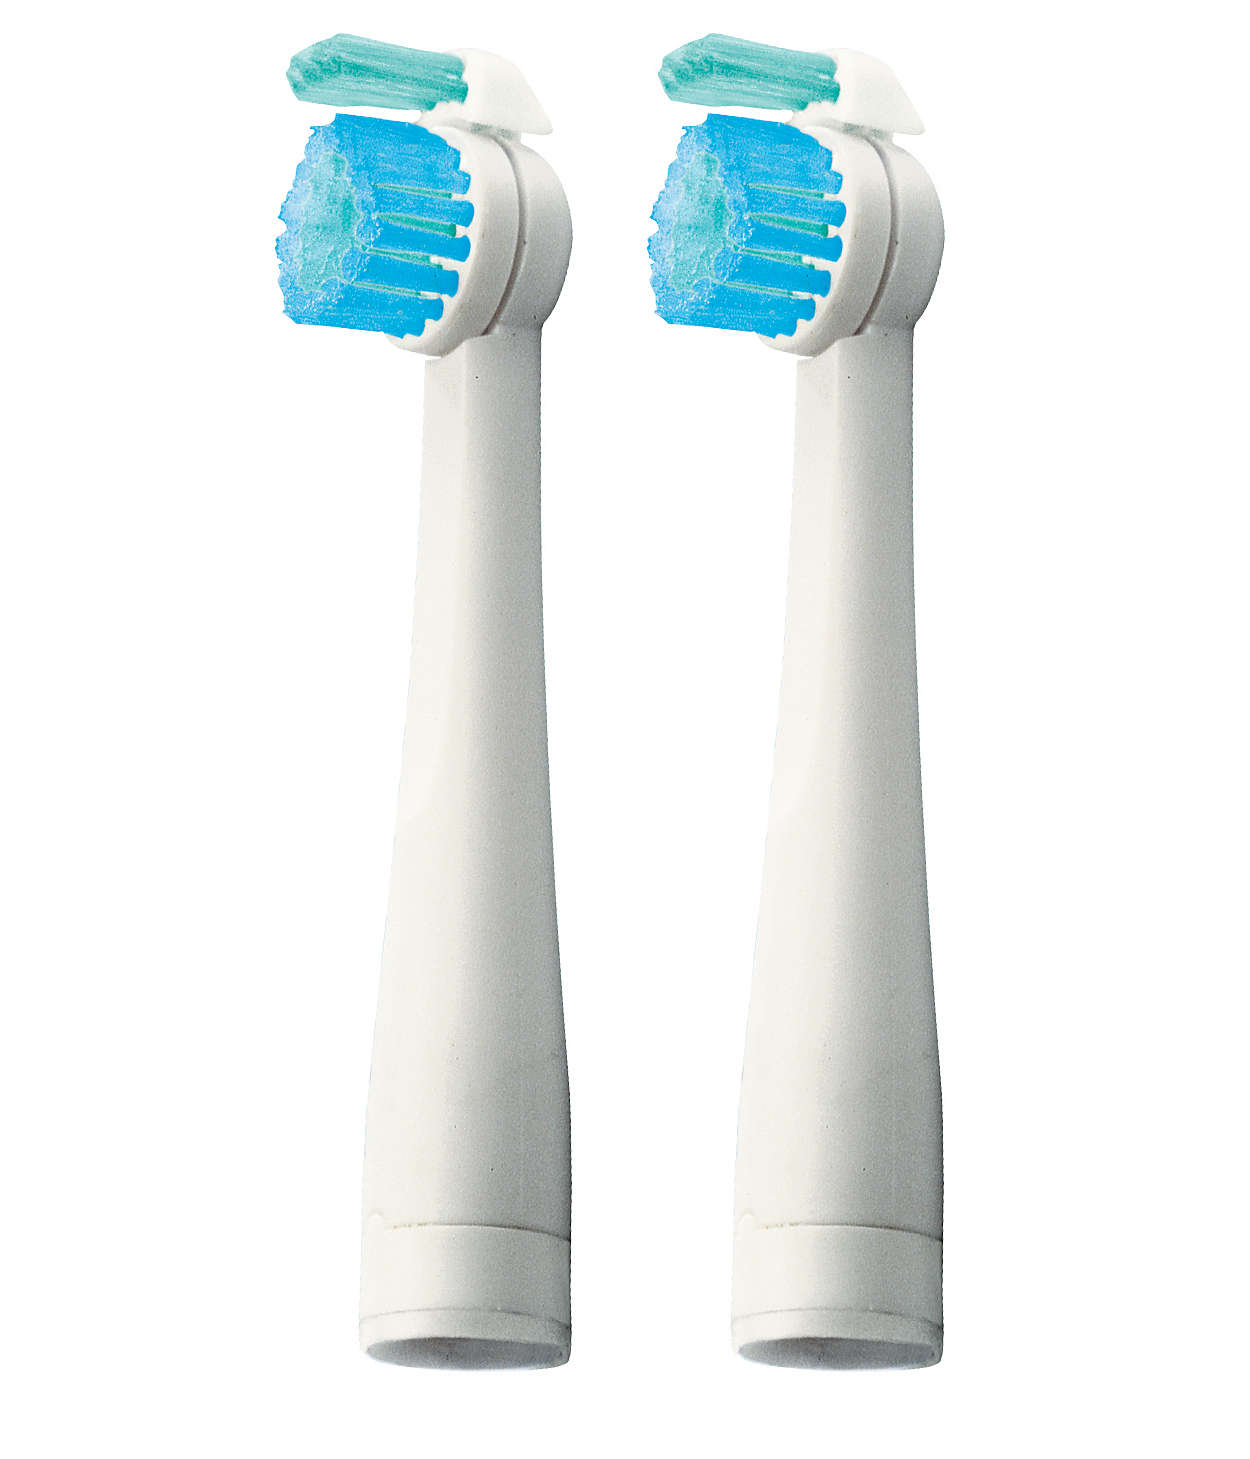 Replacement brushes with double cleaning action